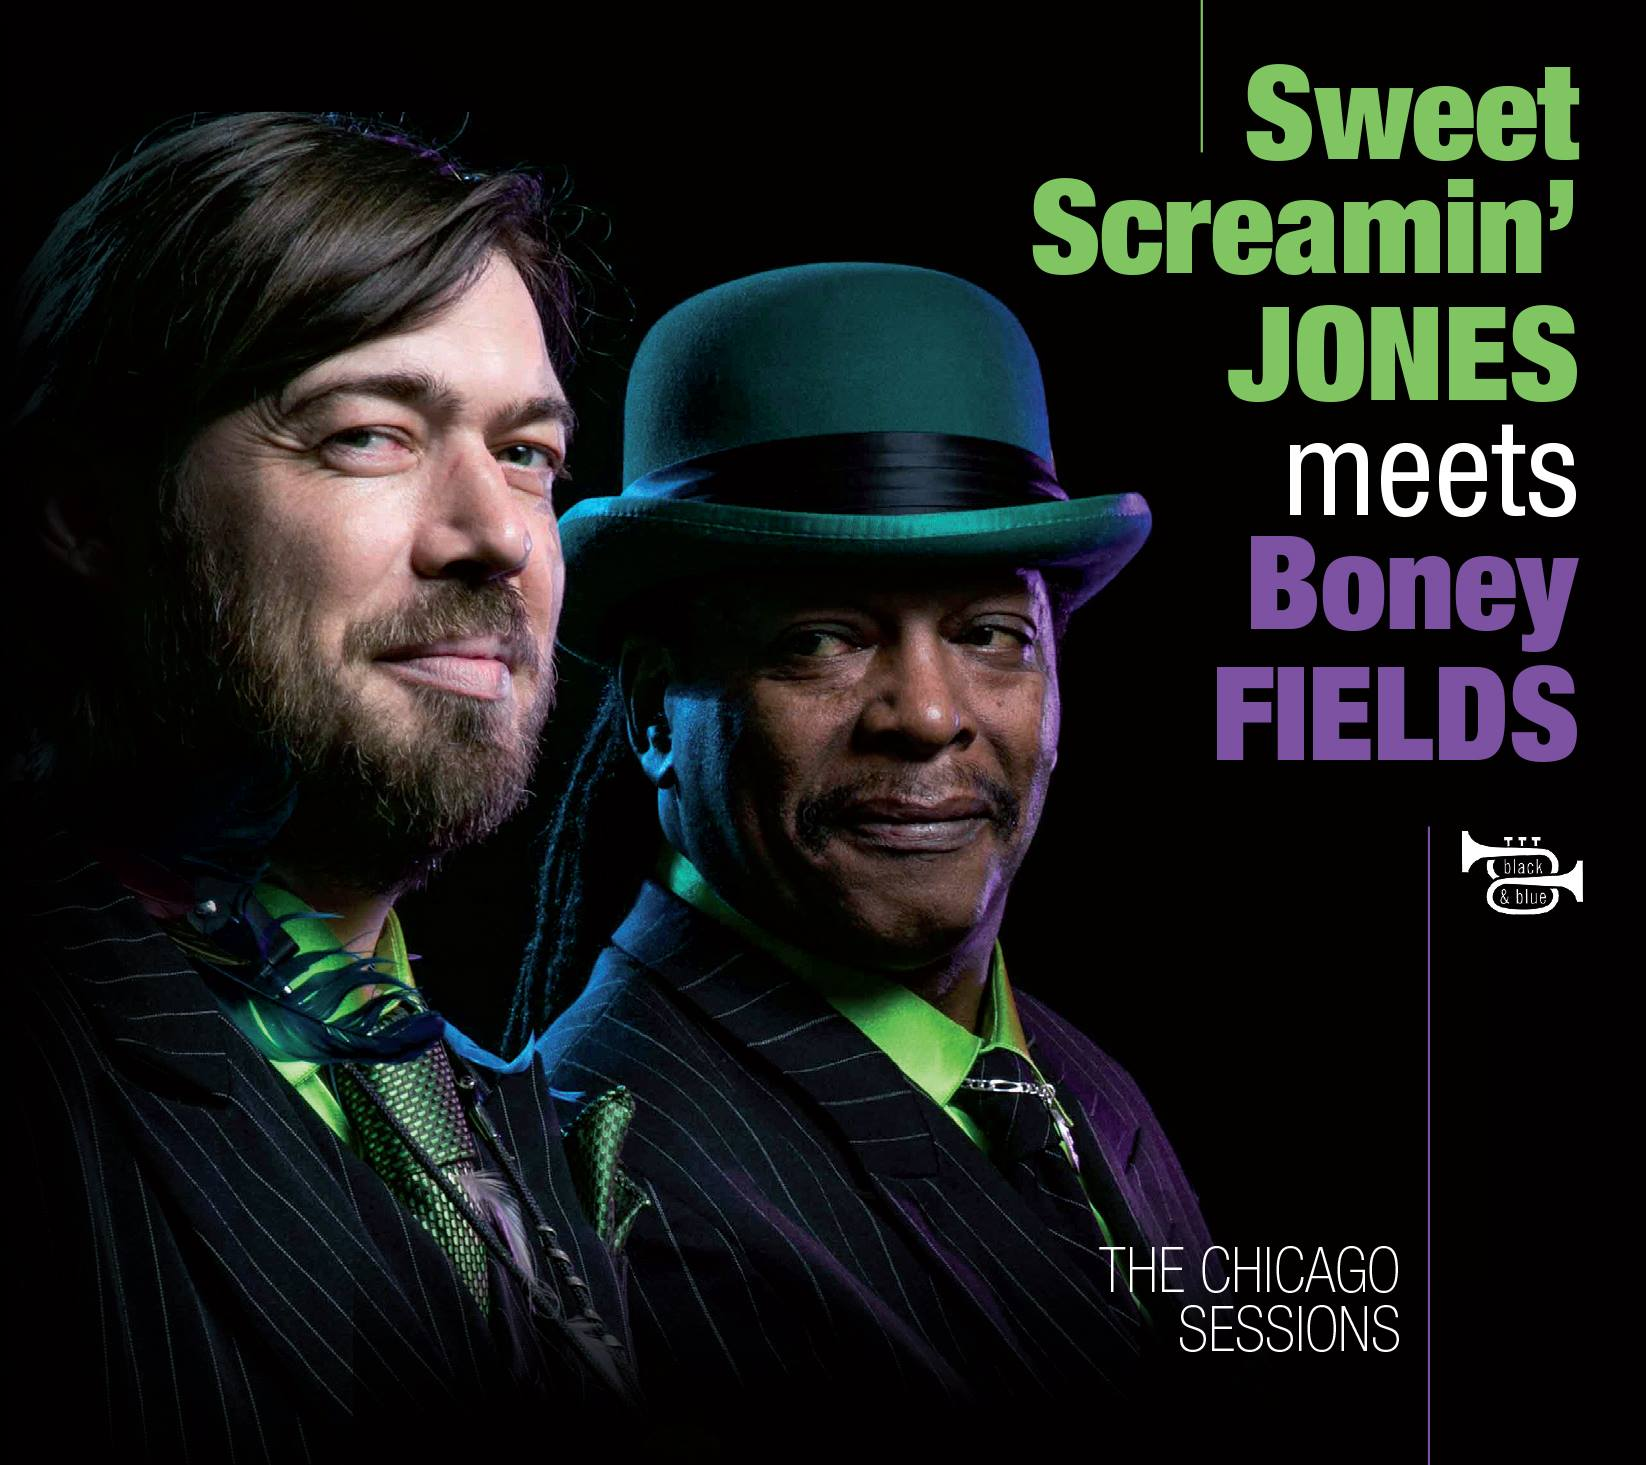 Sweet Screamin Jones & Boney Fields